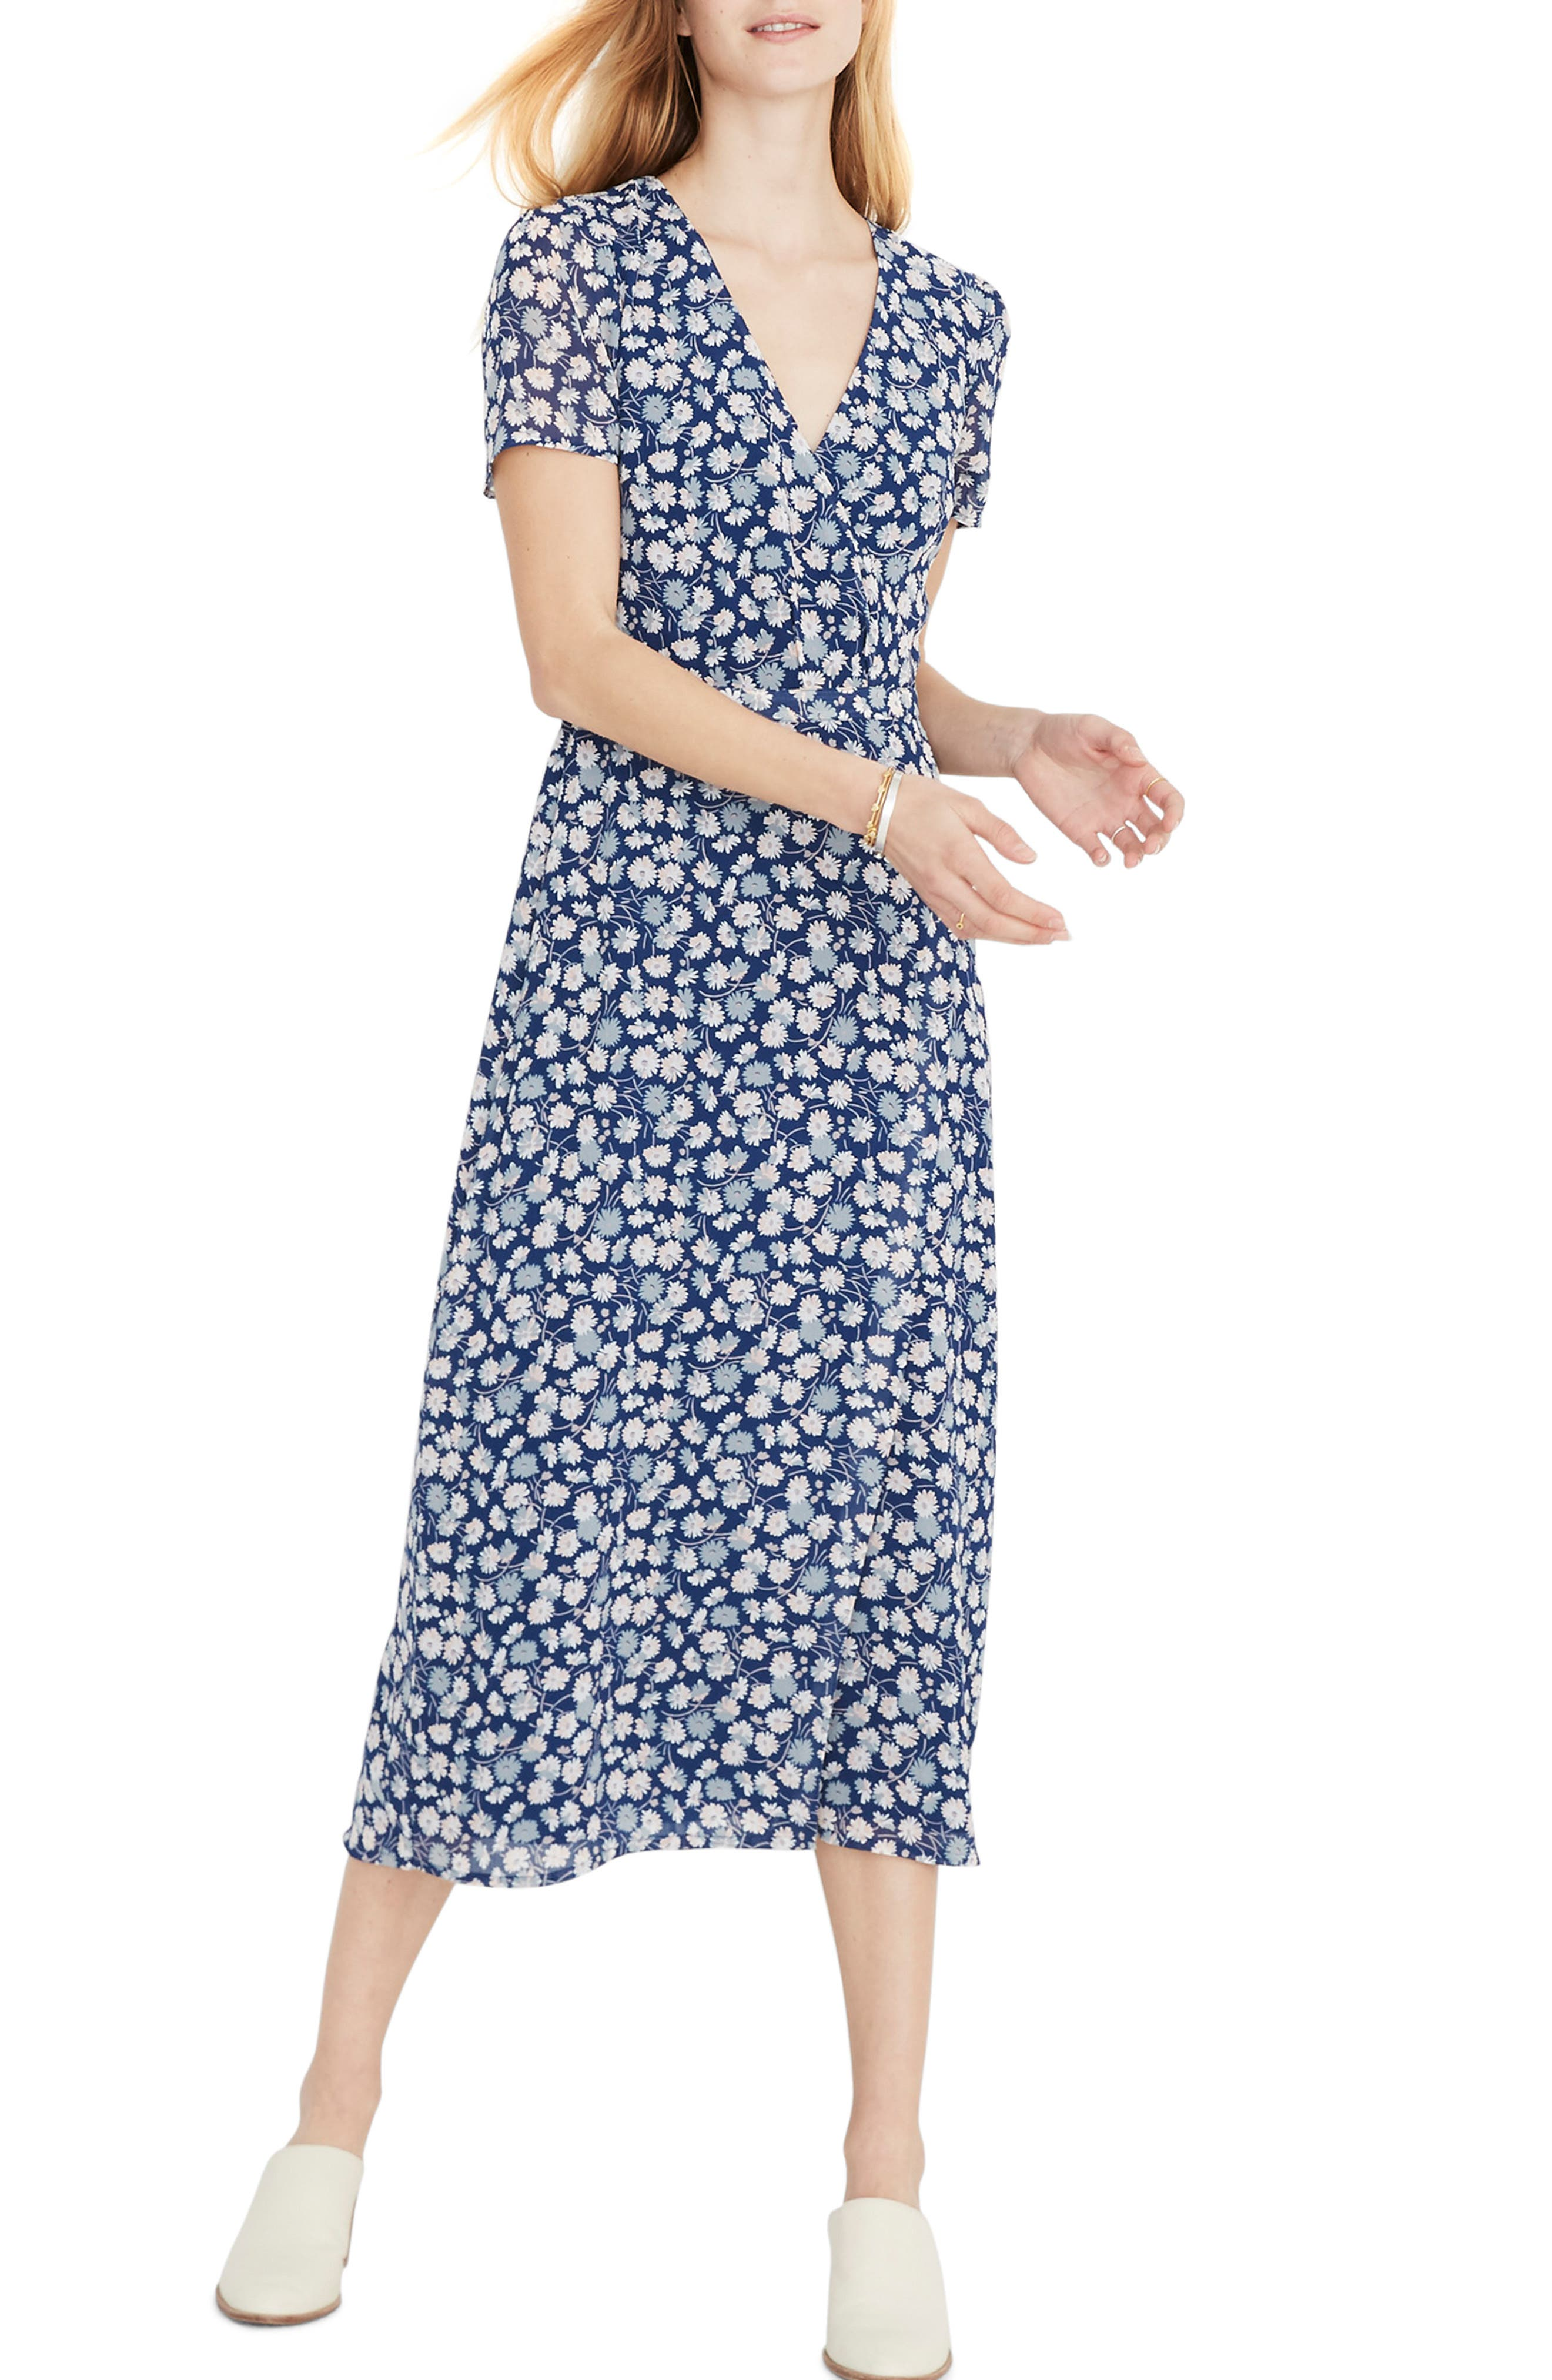 MADEWELL, Floral Wrap Front Midi Dress, Main thumbnail 1, color, 400